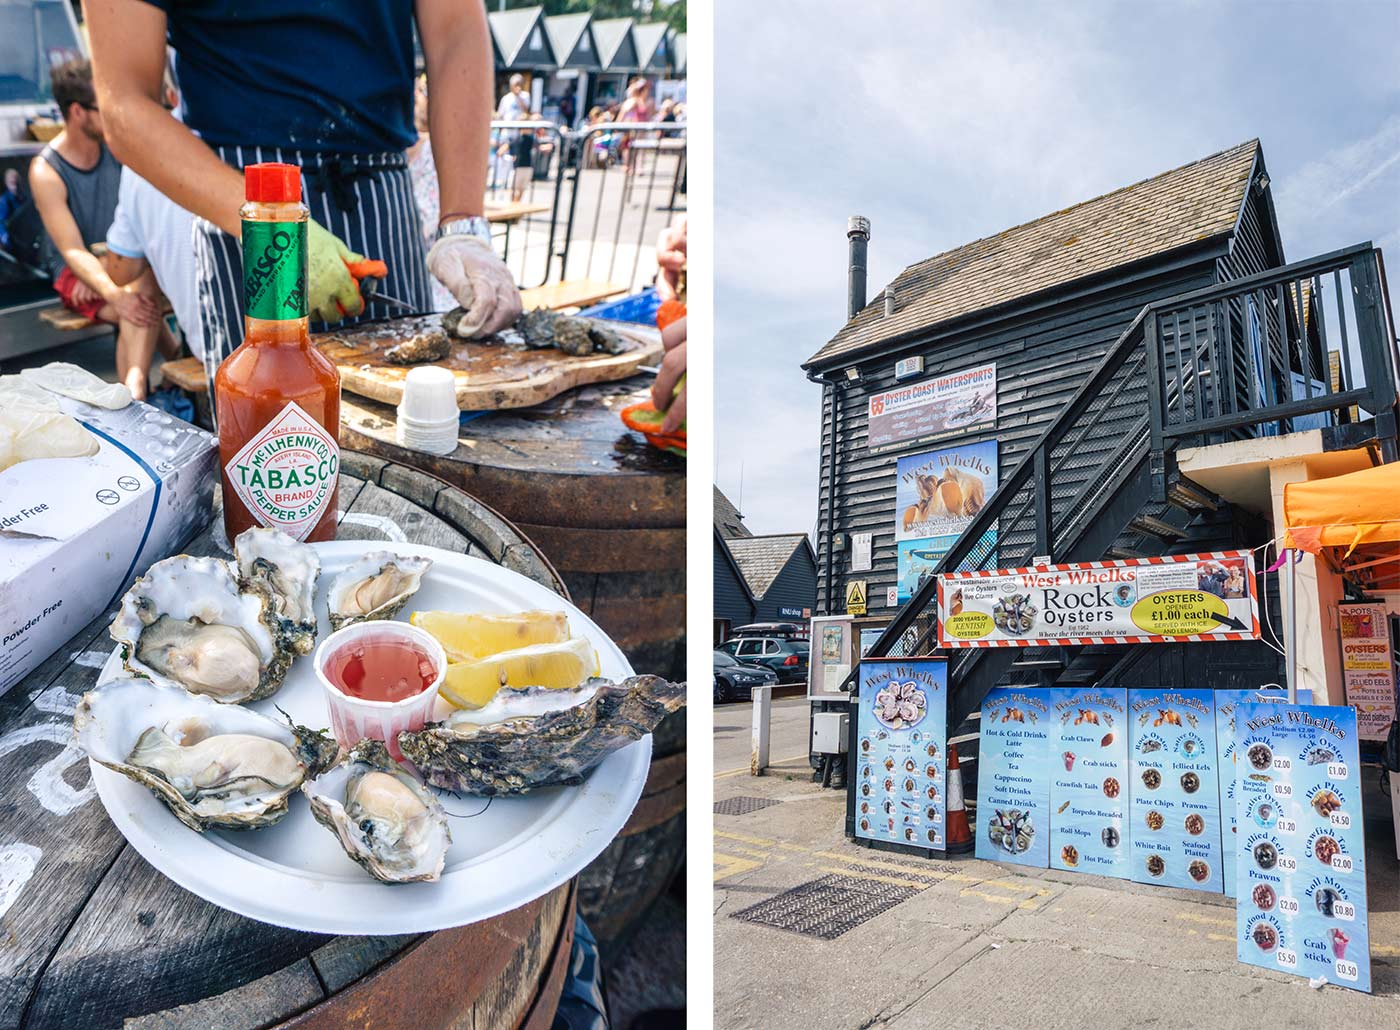 whitstable oysters | Things to do in Whitstable - a day trip from London blog post